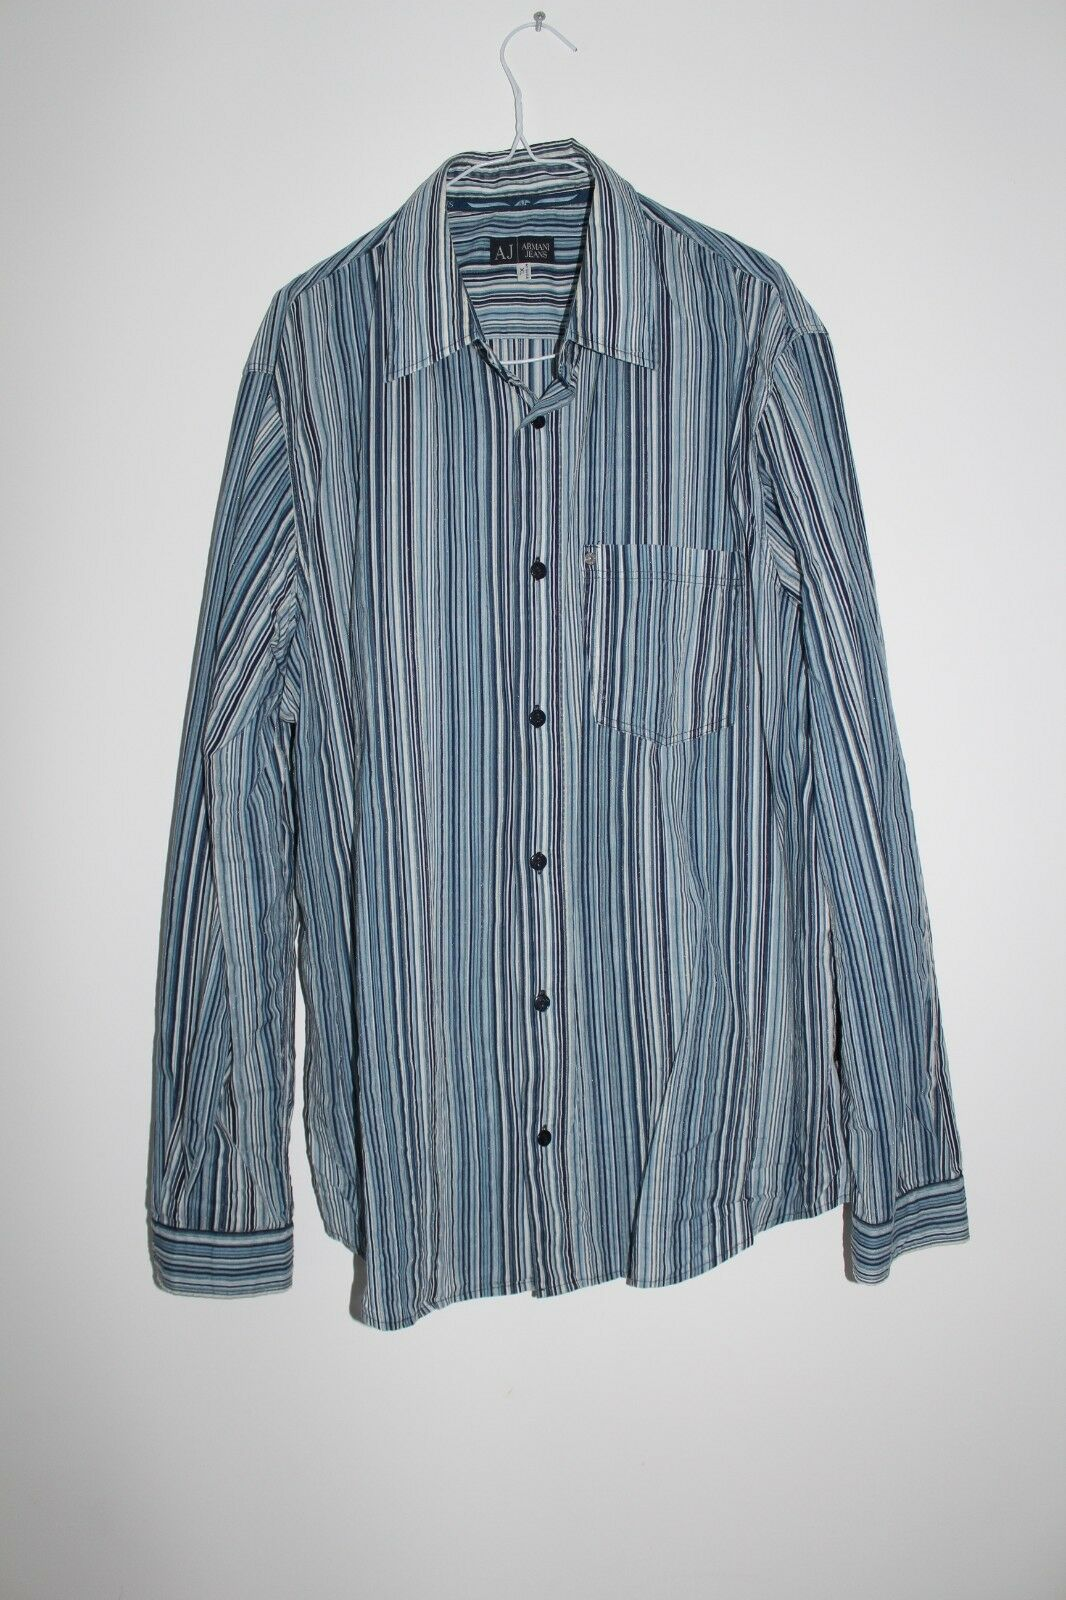 59bdb691e7cd Superbe Homme chemise Homme Superbe ARMANI JEANS Taille XL 6aa6f3 ...